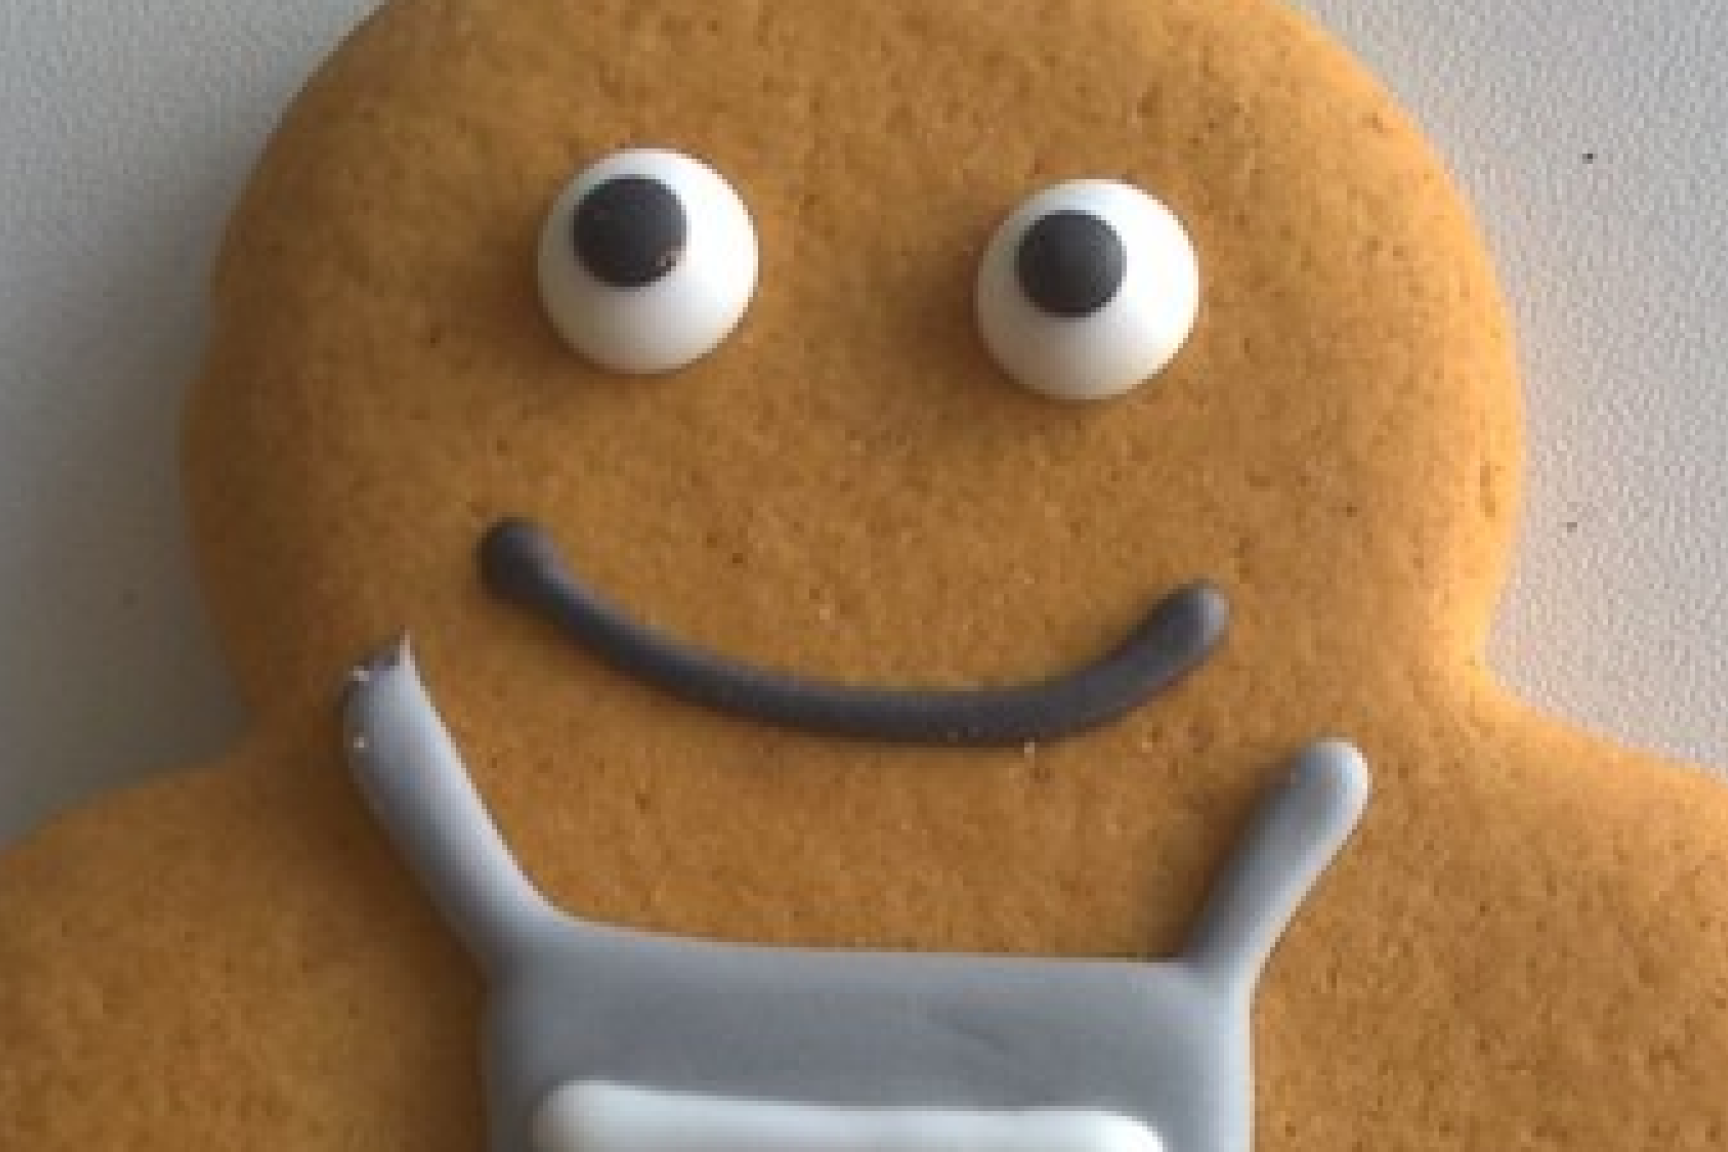 The Co-op is launching a gender-neutral gingerbread person and wants you to pick its name